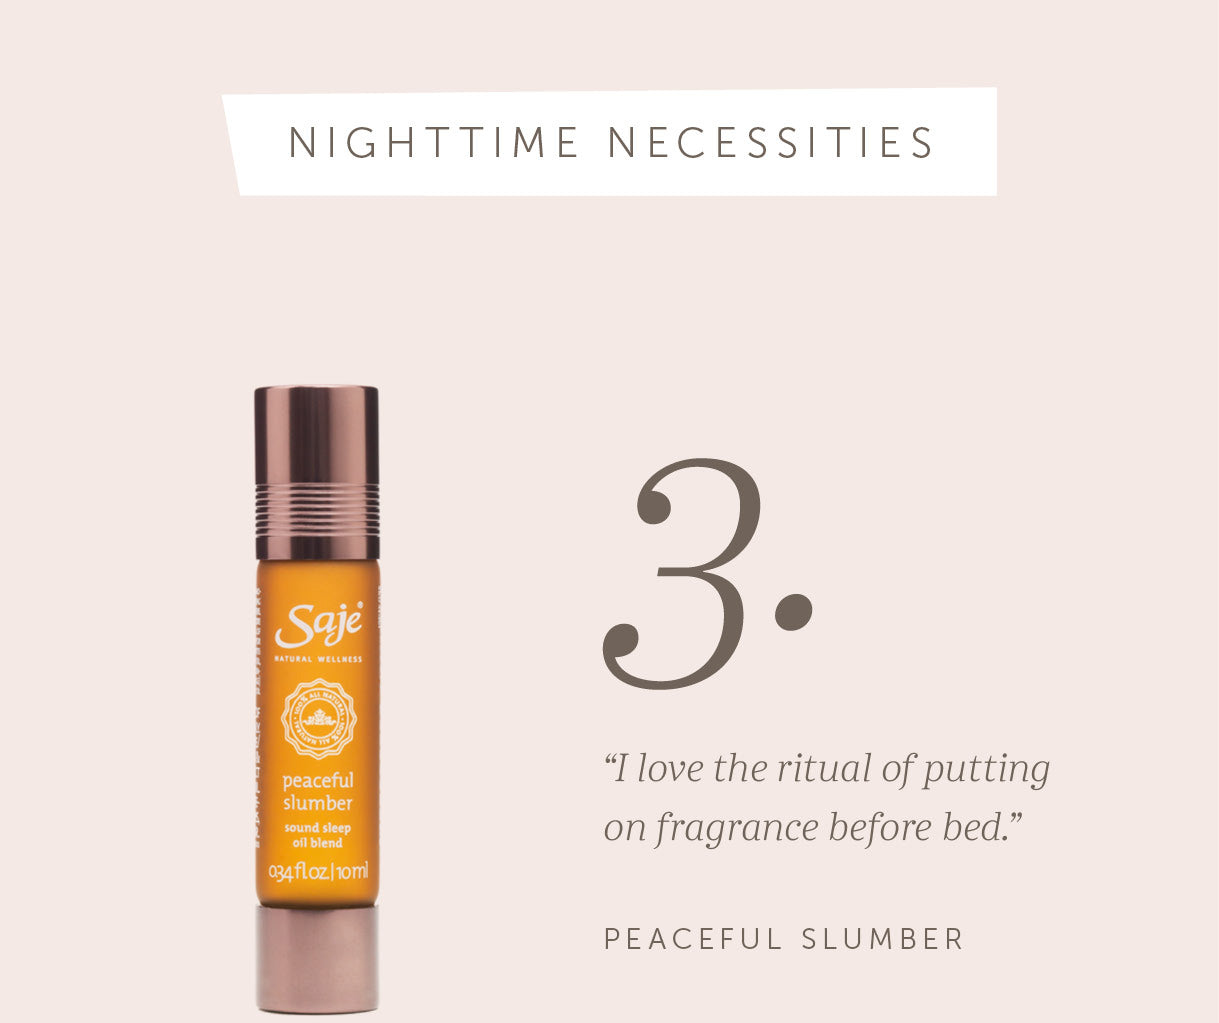 Saje Peaceful Slumber Fragrance